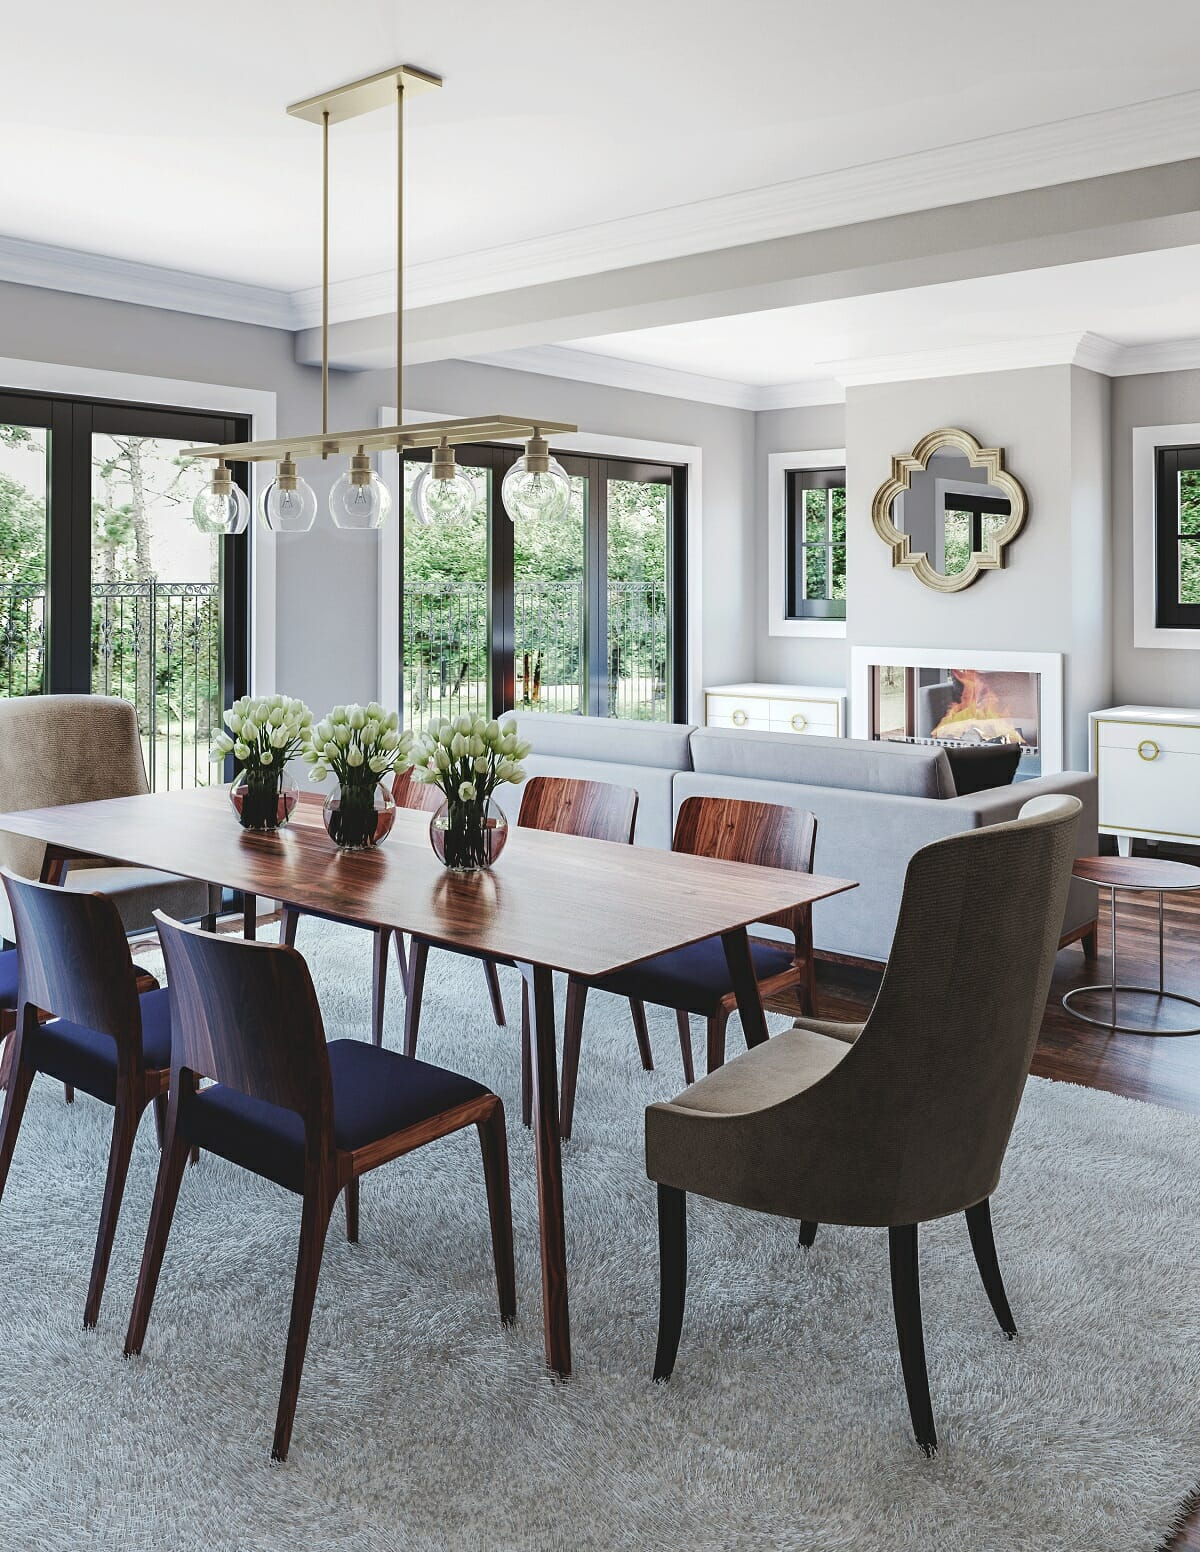 find an interior designer for the living-dining room